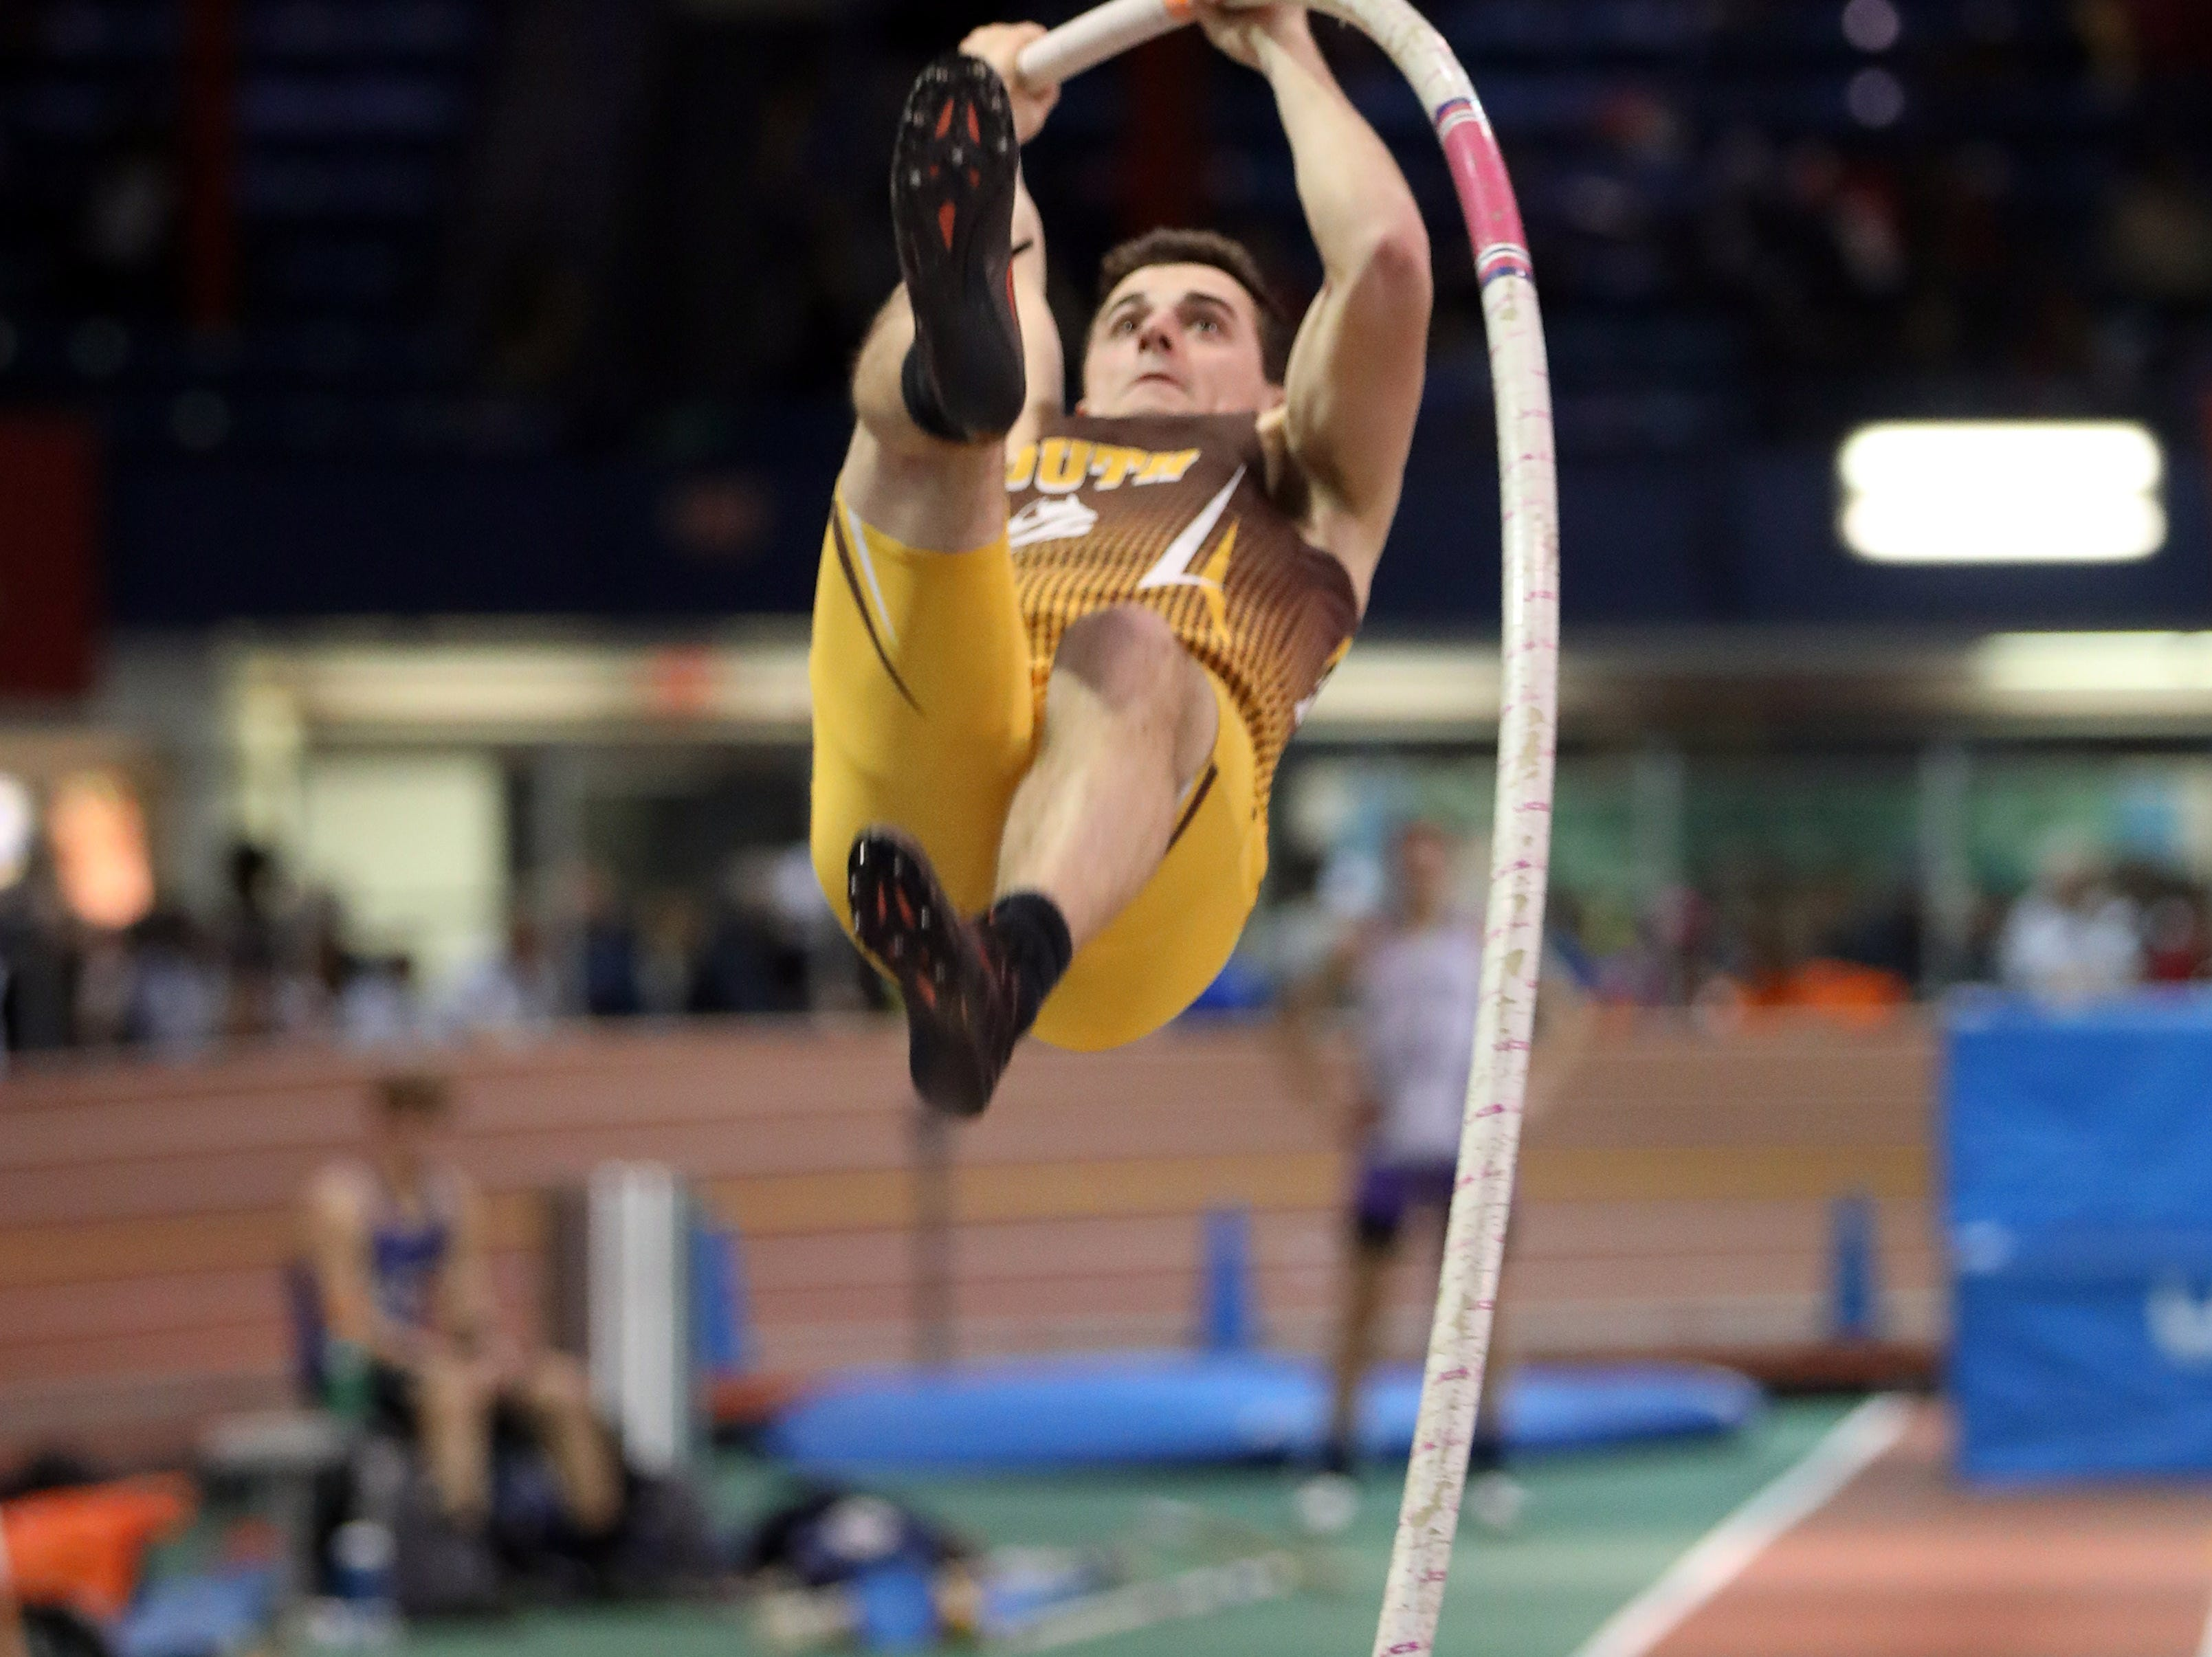 Clarkstown South's Tommy Qualter competes in the boys pole vault during the Millrose Games Trials at the Armory in Manhattan Jan. 9, 2019.